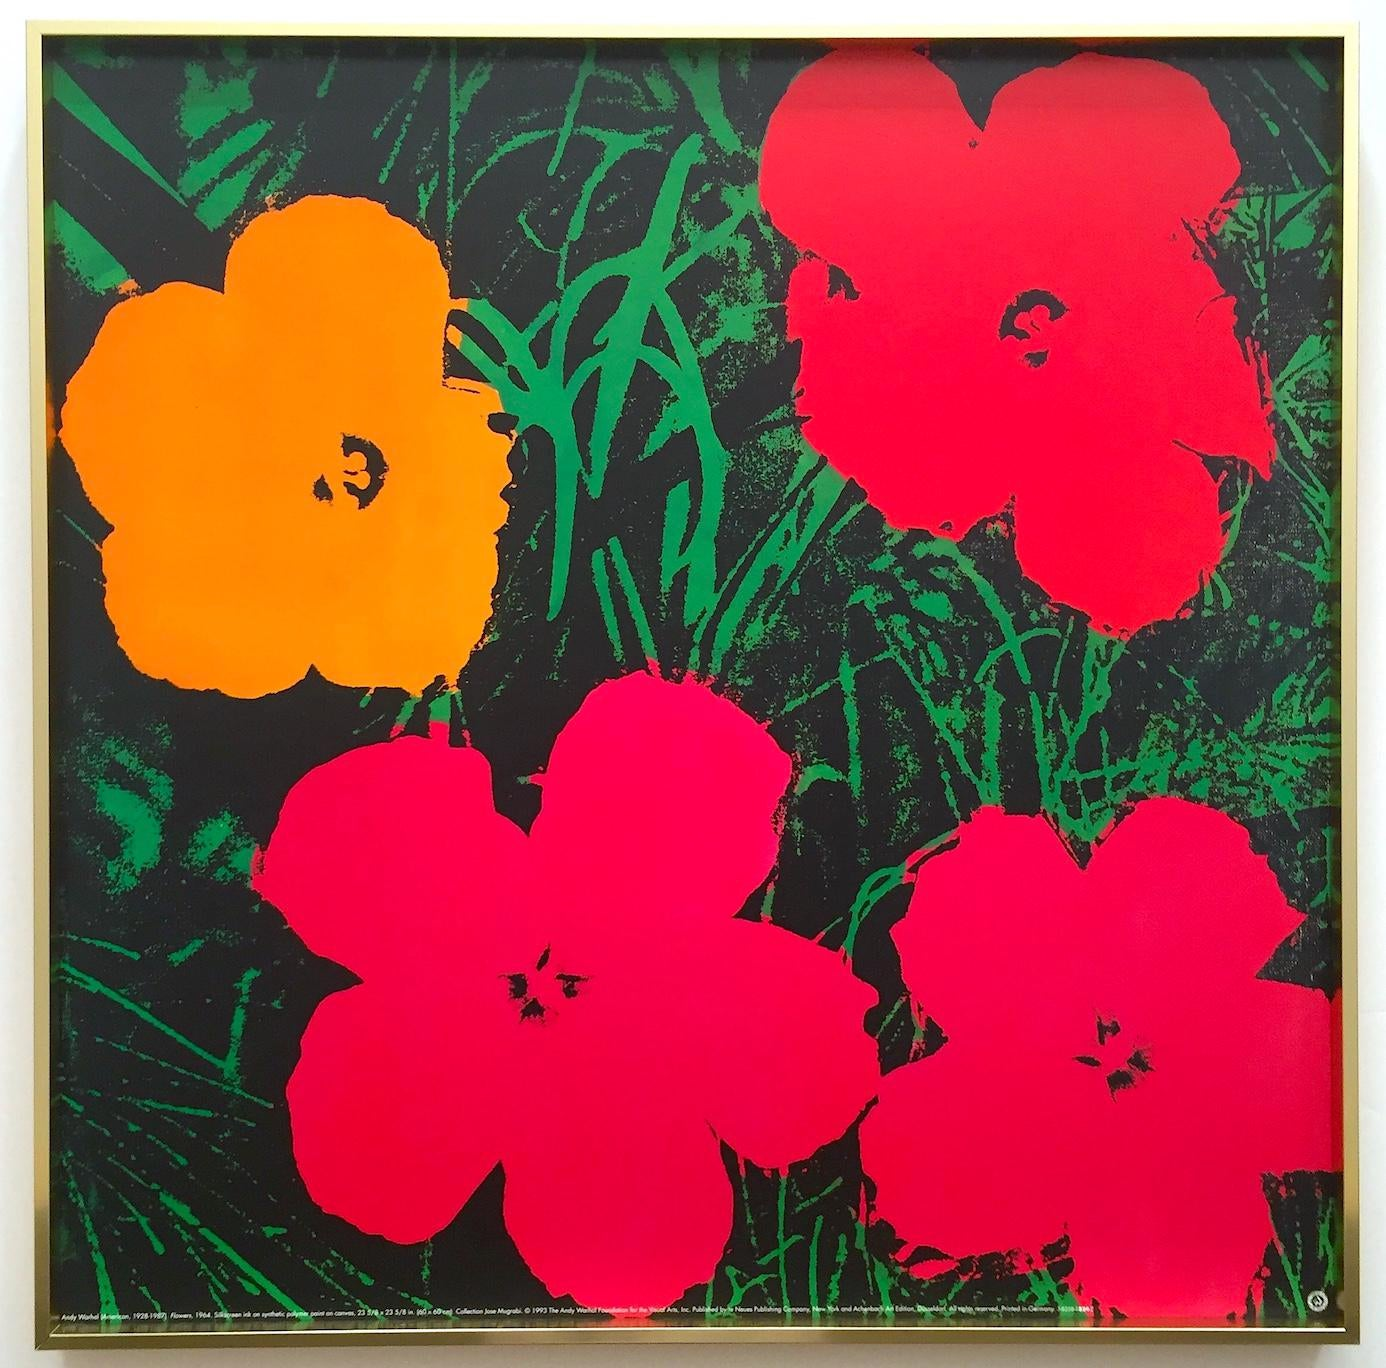 POP ART POSTER RED FLOWERS BY ANDY WARHOL FRENCH PRINTING ON HEAVY STOCK PAPER